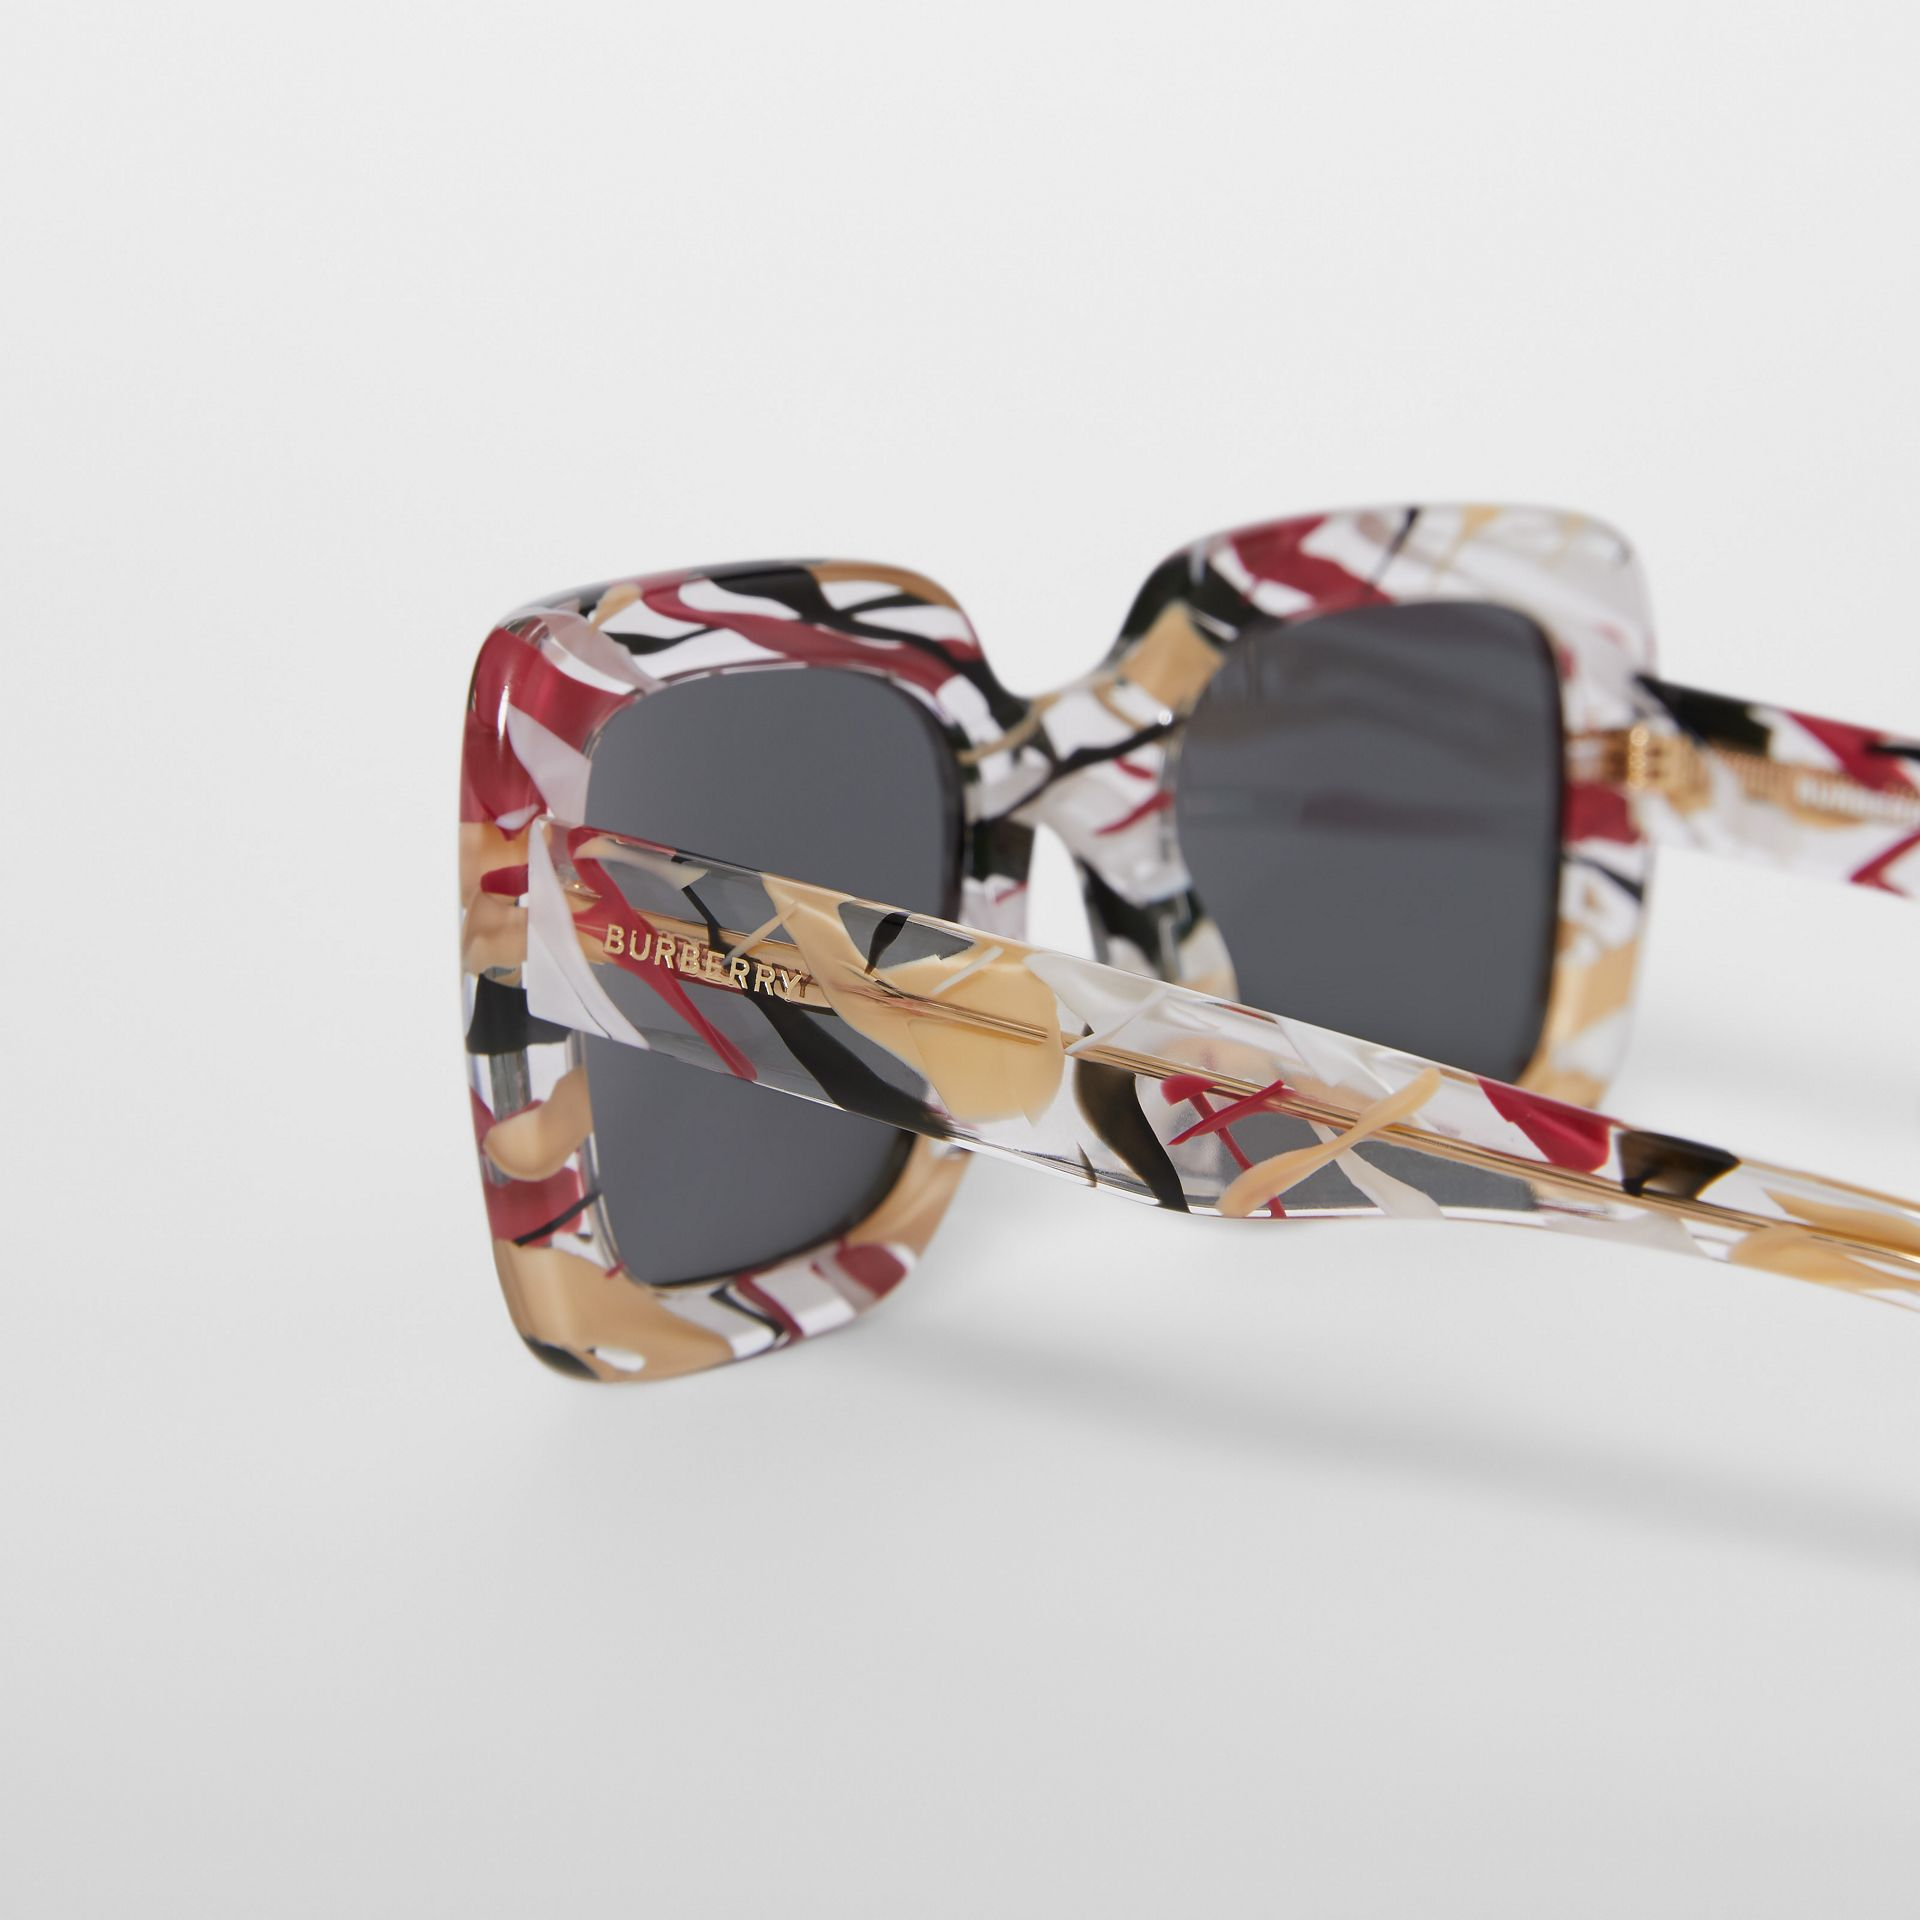 Marbled Check Oversized Square Frame Sunglasses in Lacquer Red - Women | Burberry - gallery image 1